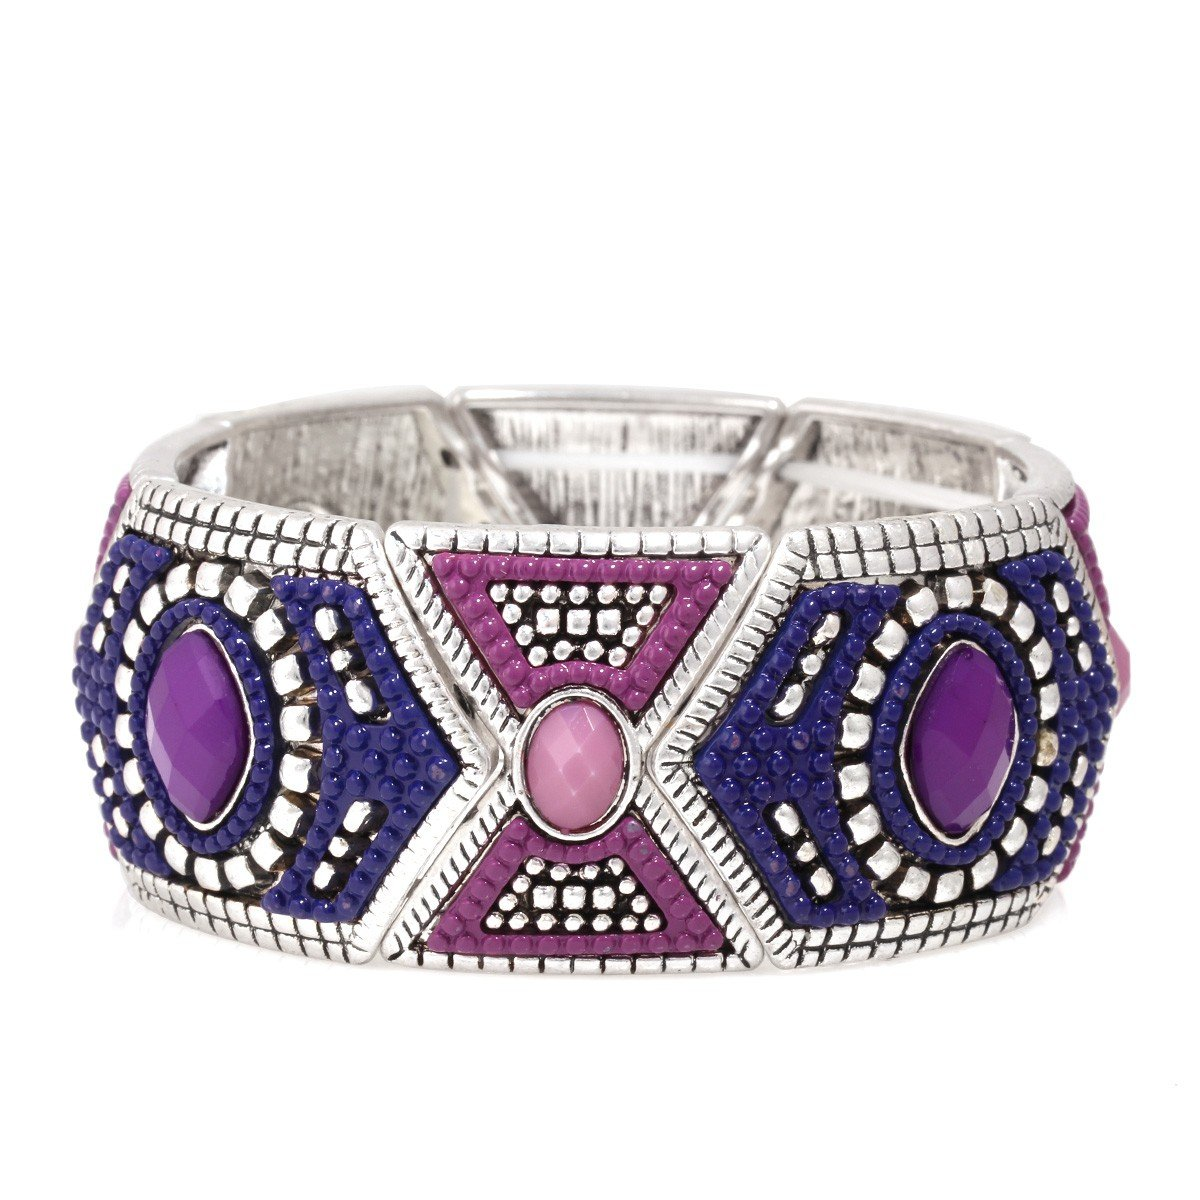 Jewlery11 Silver-Tone Metal Blue and Purple Stretch Indian Bracelet Gift For Her